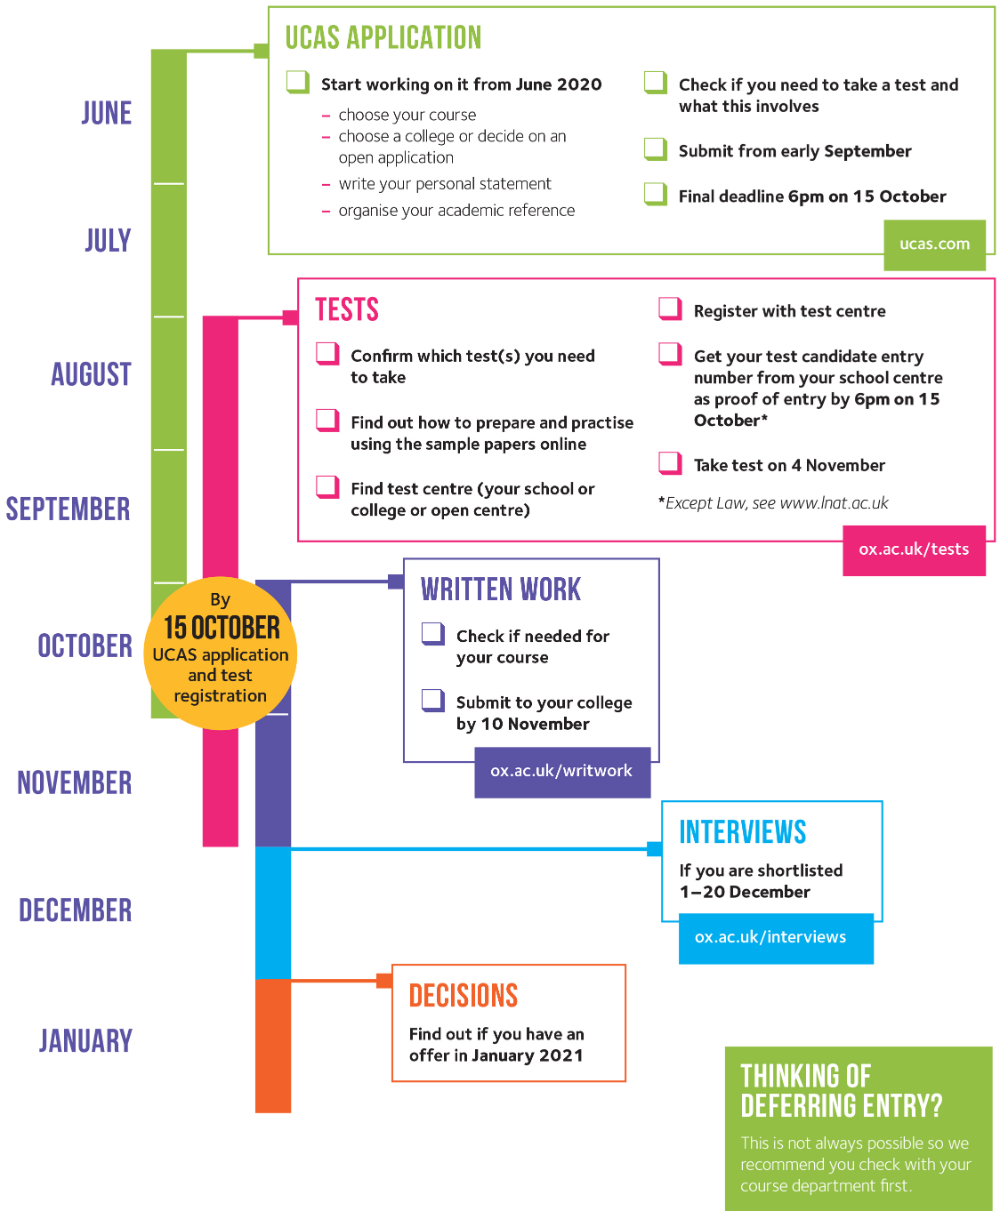 2021 entry admissions timeline University of Oxford in